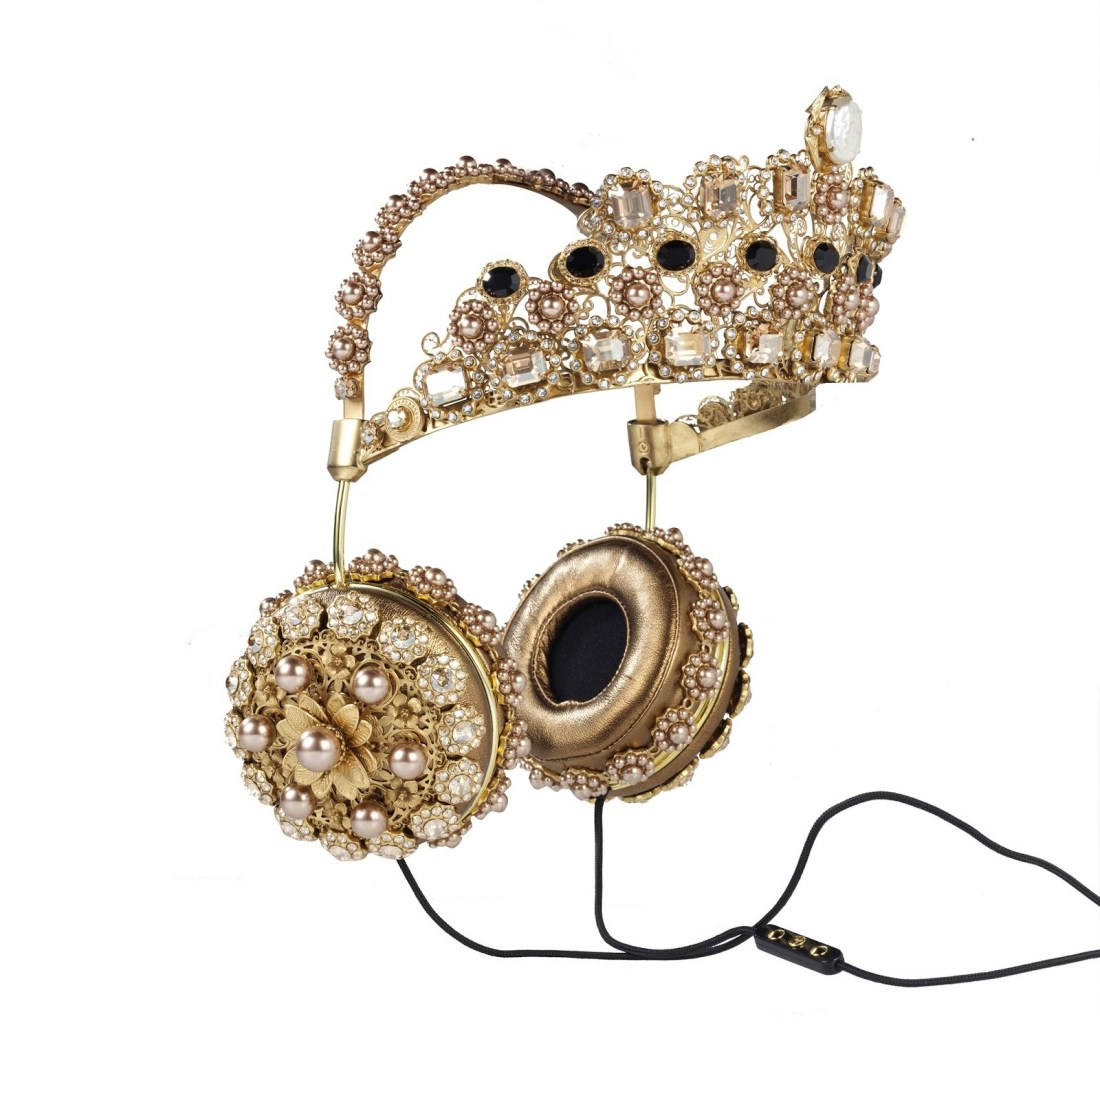 "Dolce & Gabbana's ""Napa Leather Rhinestone Headphones With Crown"""